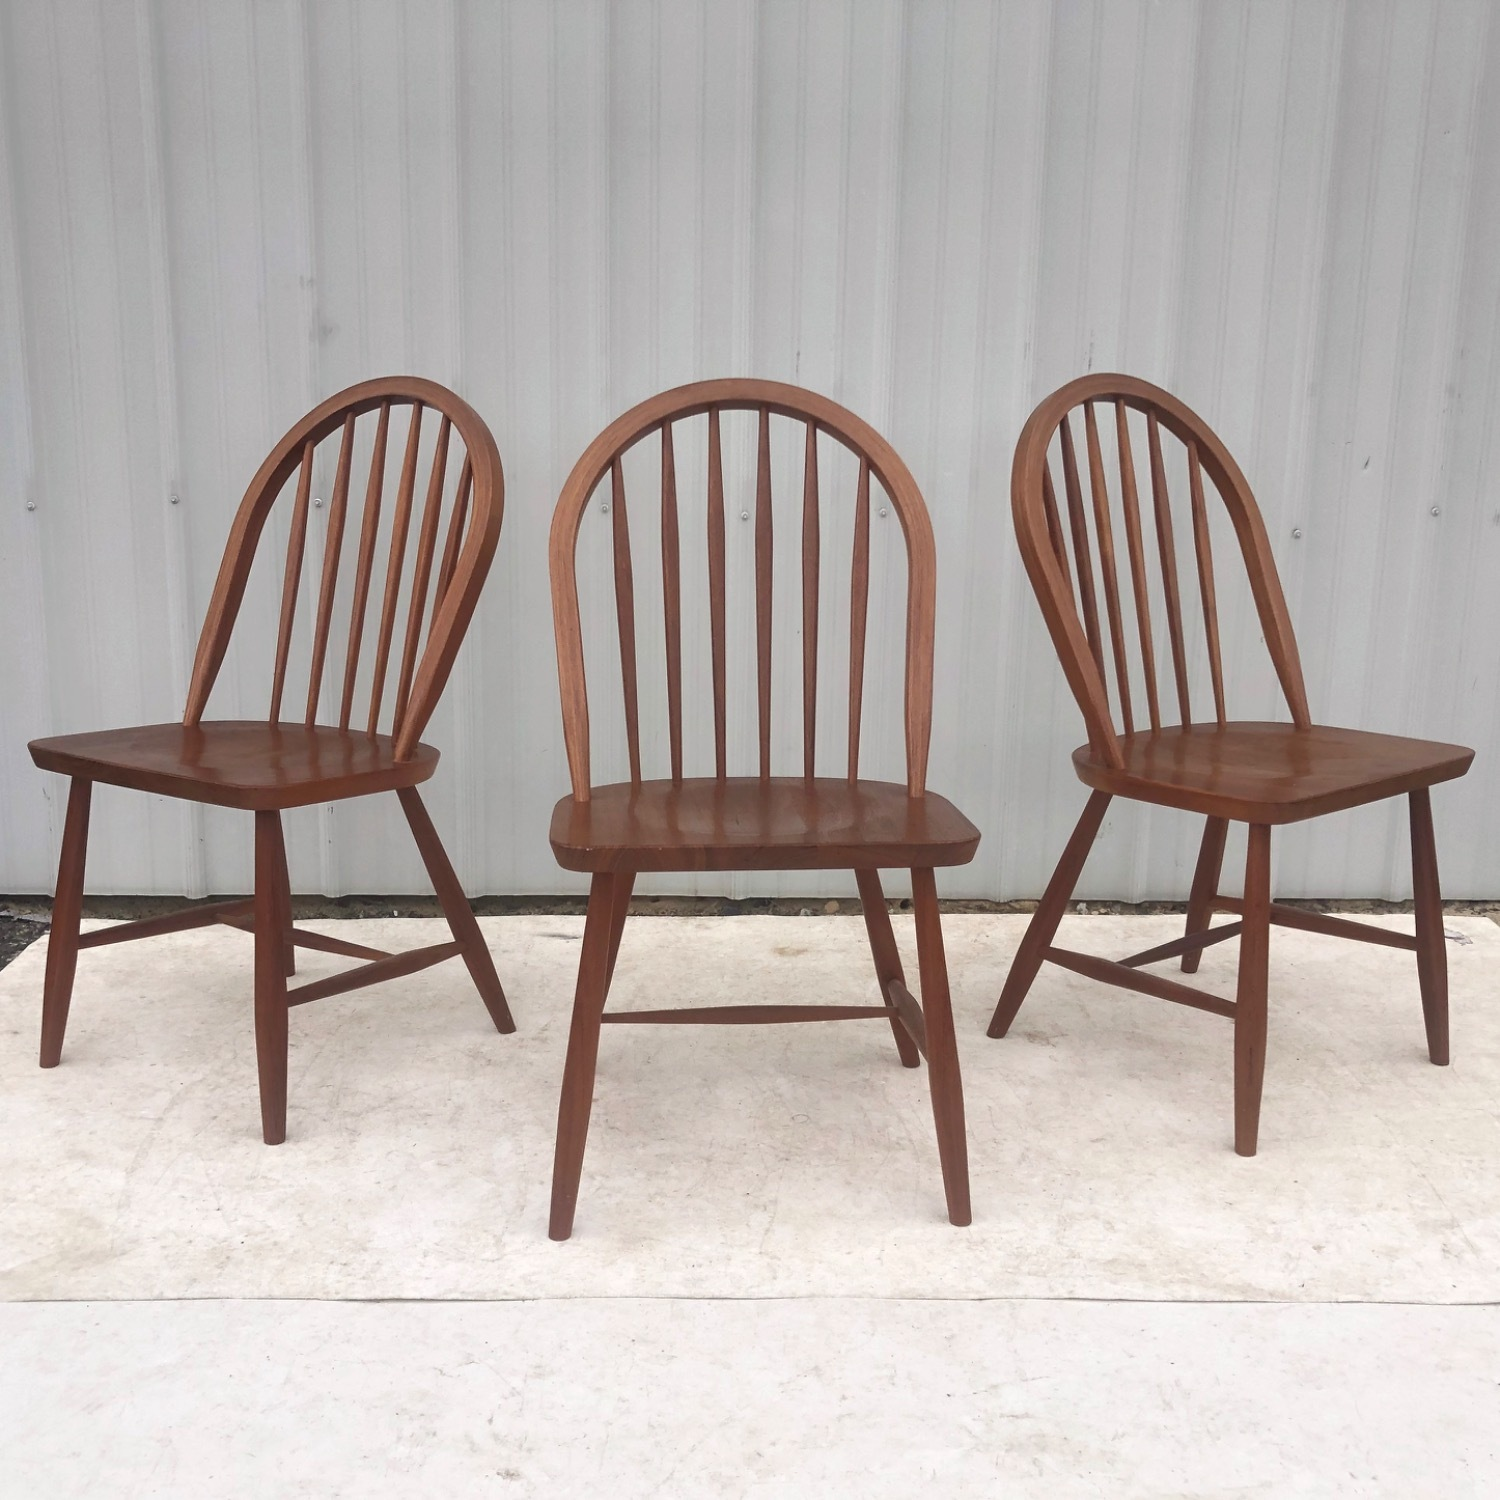 Vintage Modern Dining Set w/ Six Chairs - image-18